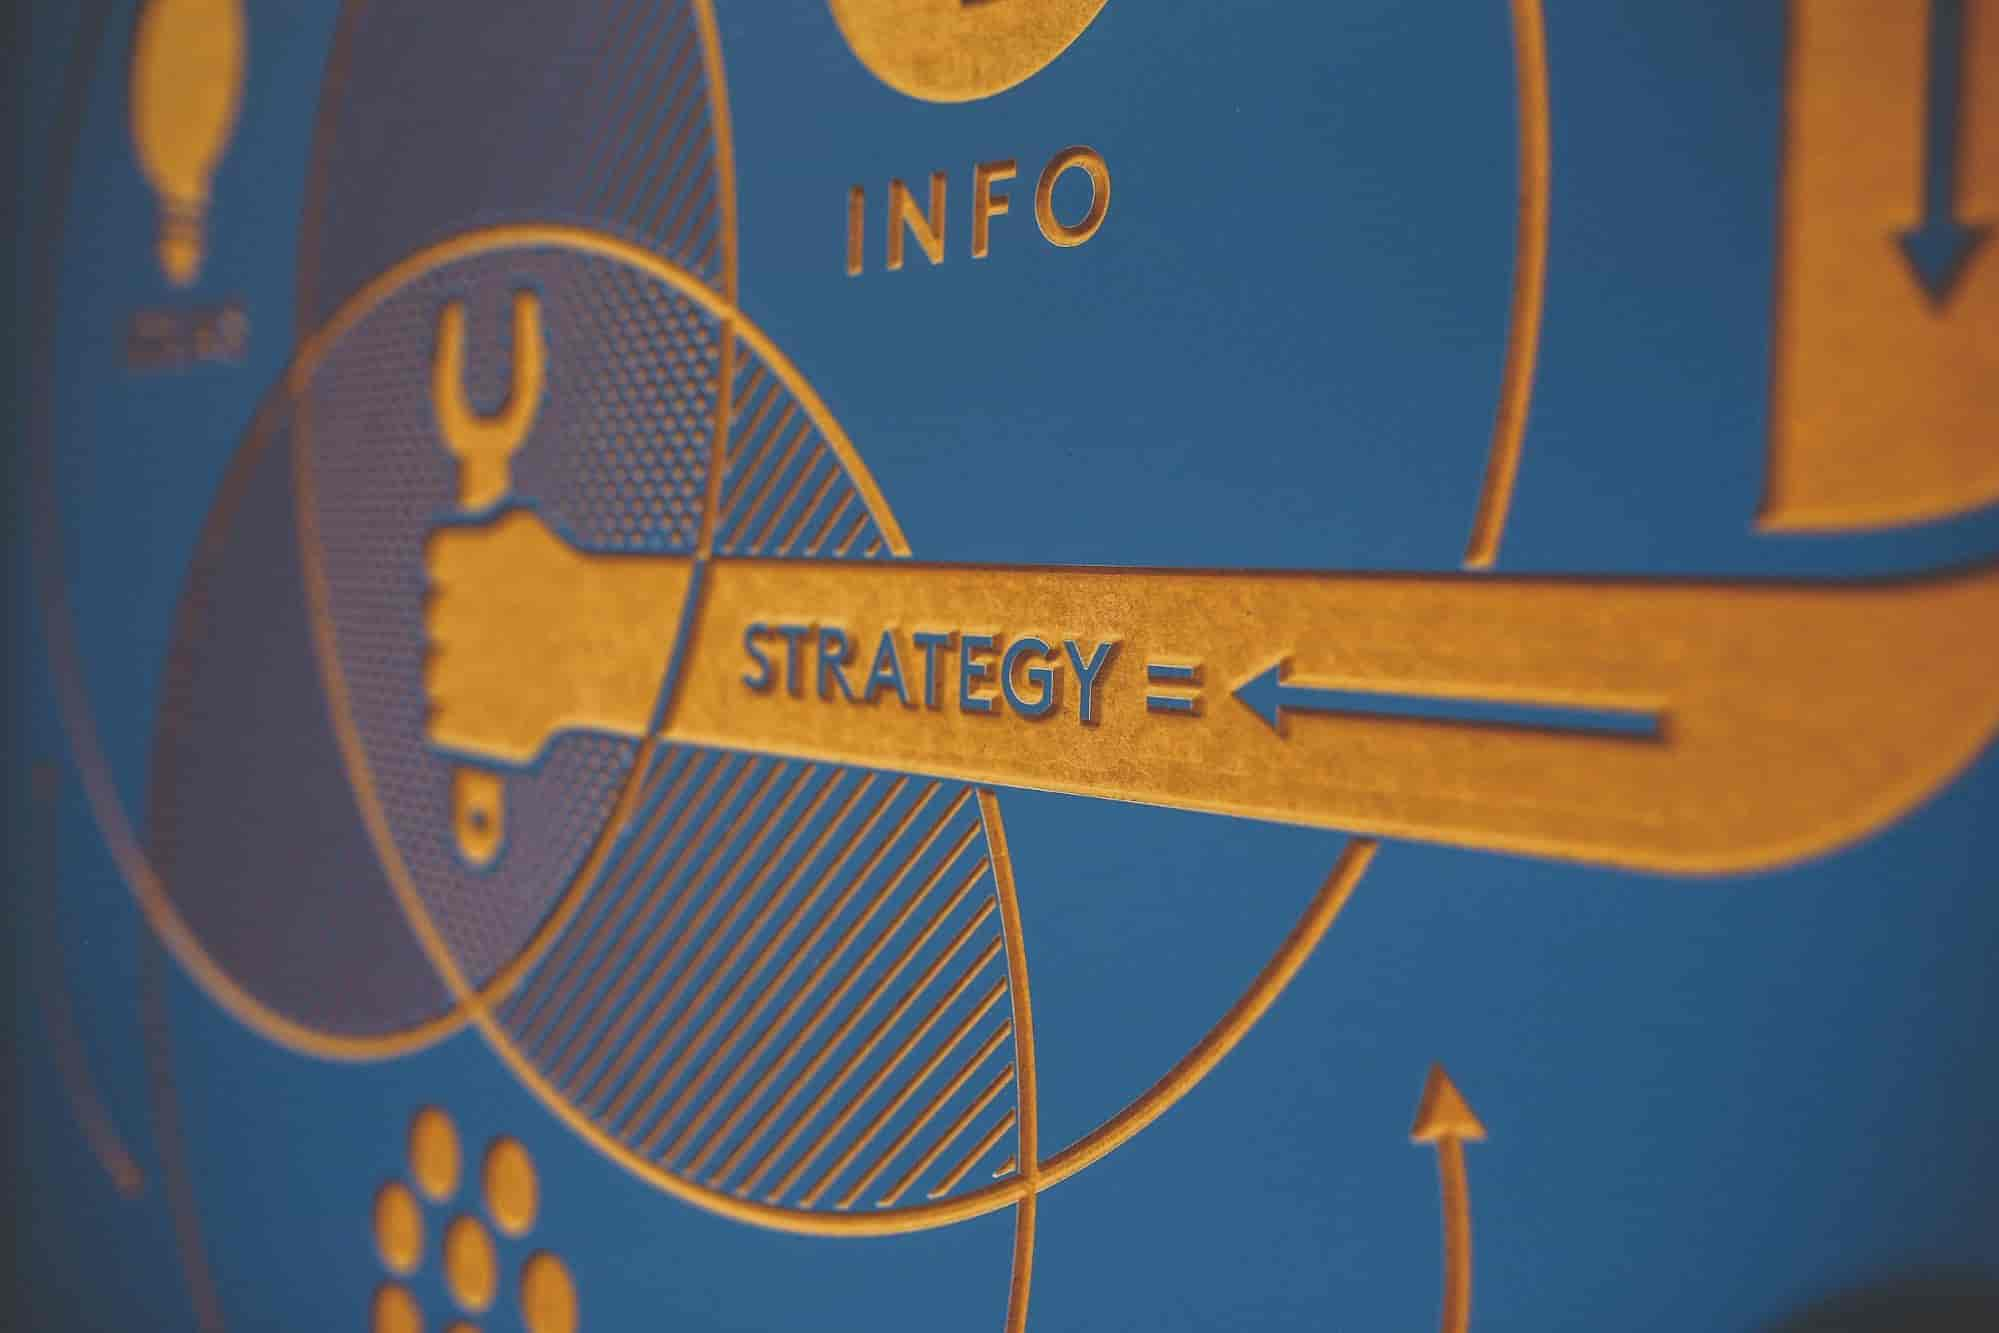 hr strategy is planning development and management of its human capital